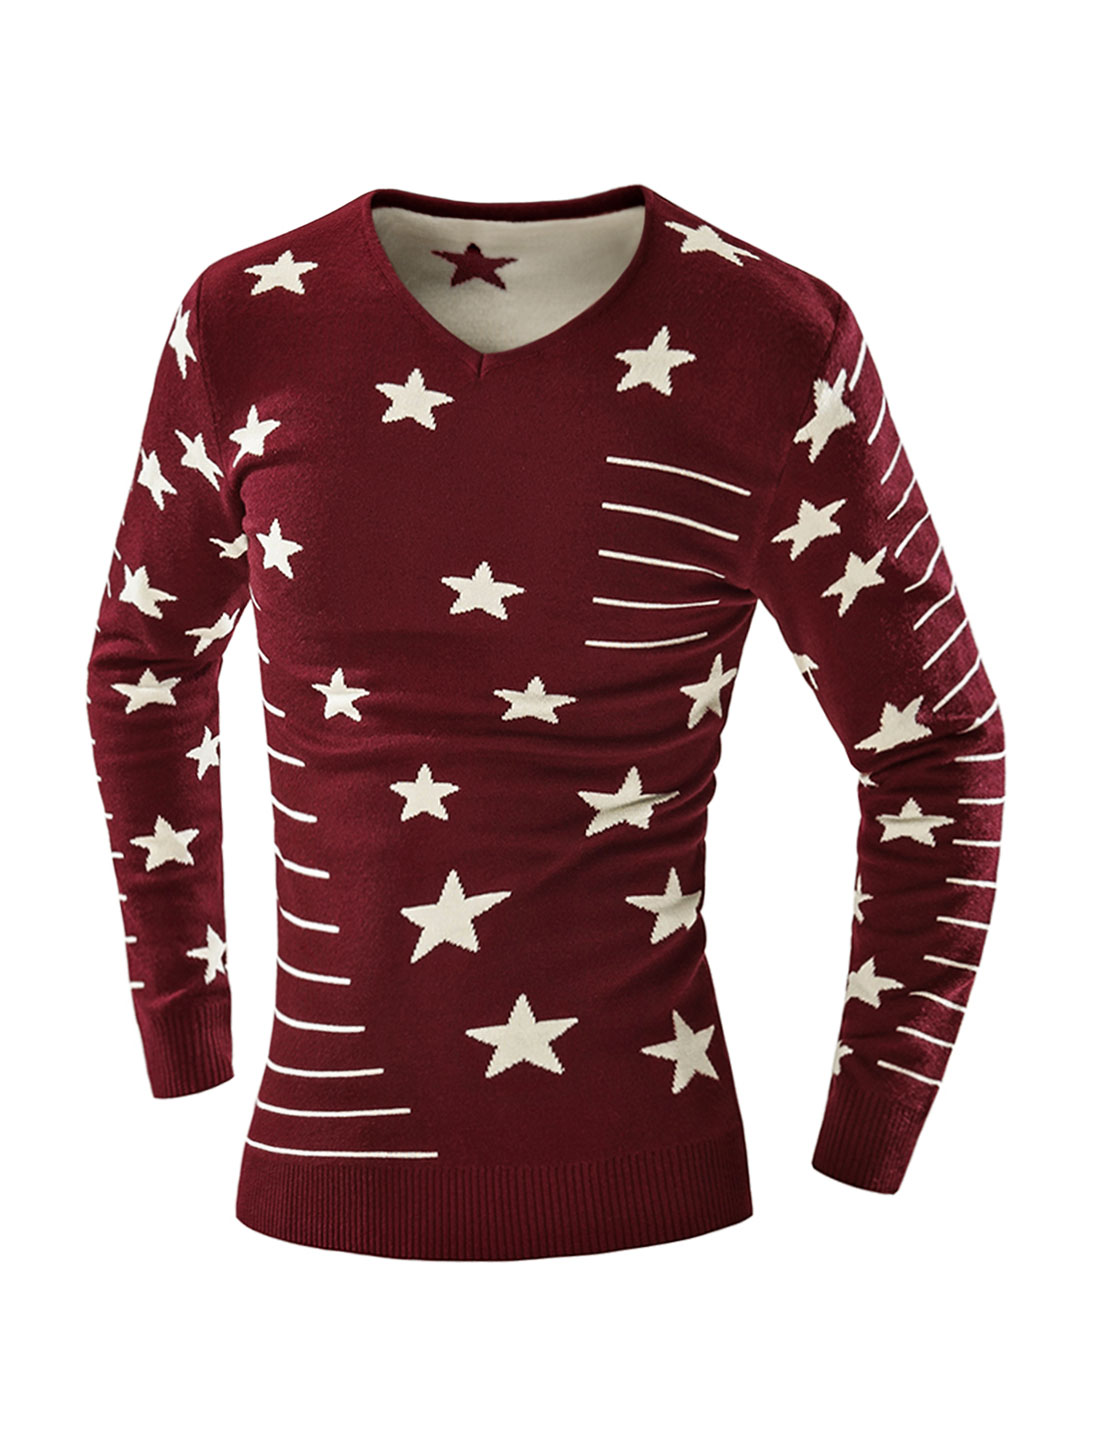 Man V Neck Slim Fit Striped Stars Knit Shirt Red M